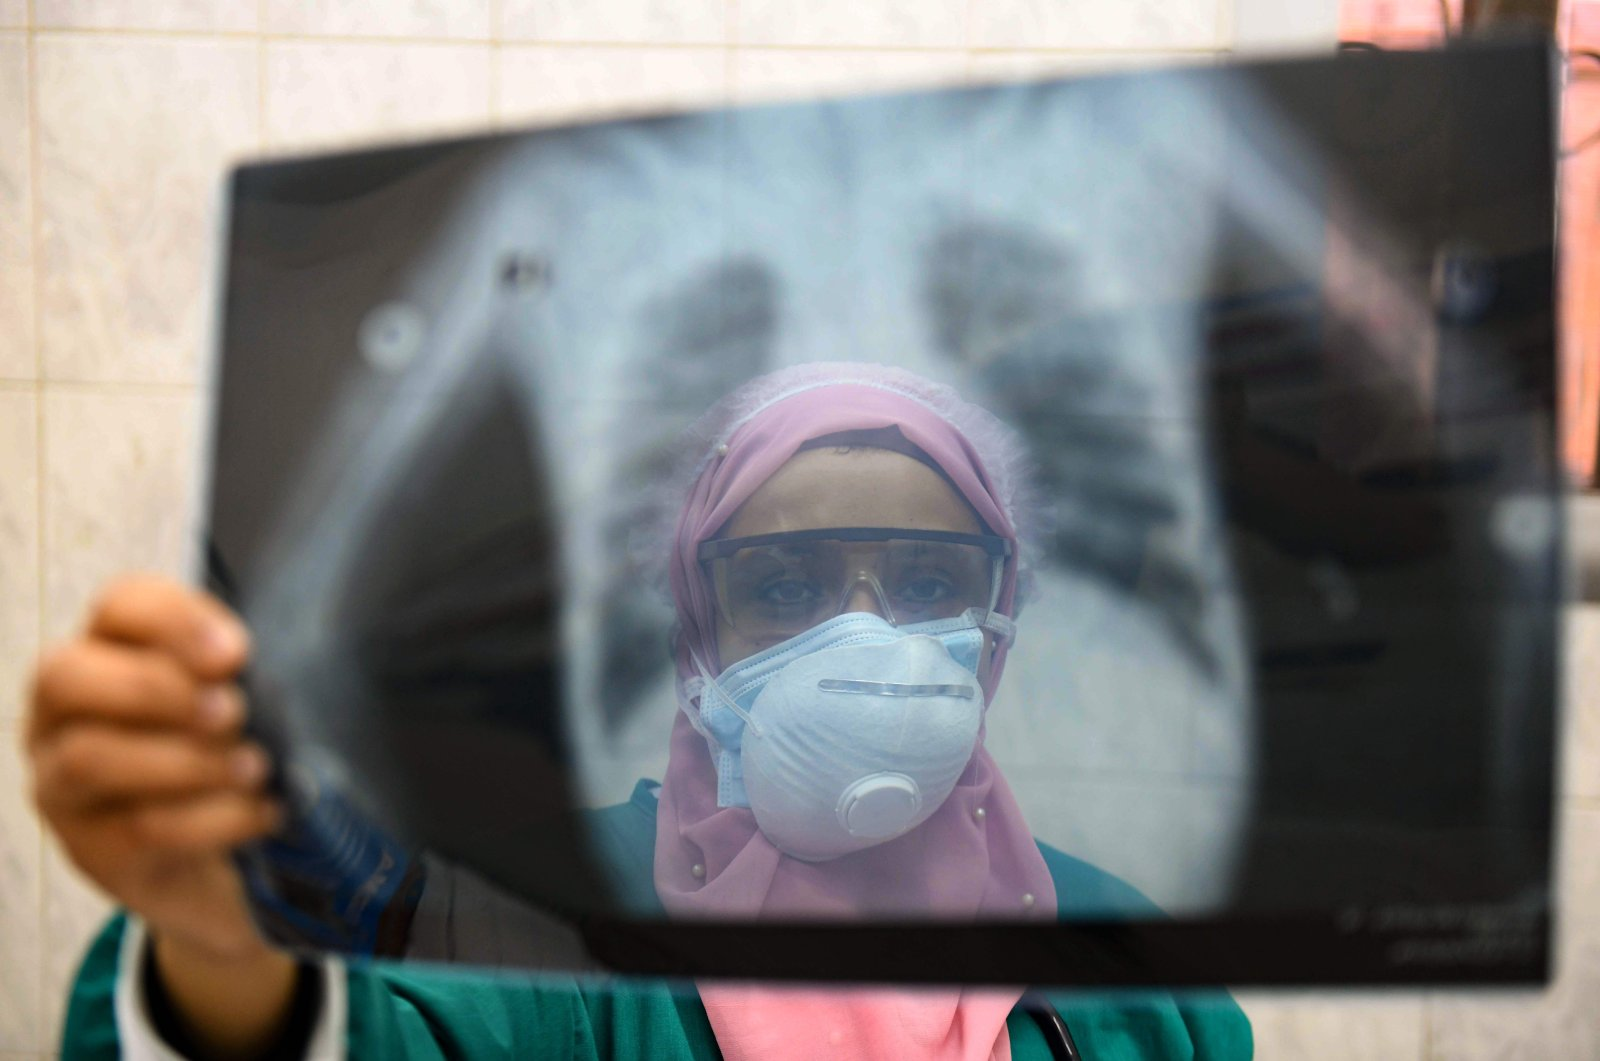 An Egyptian doctor wearing two protective masks checks a patient's lung X-ray at the infectious diseases unit of Imbaba hospital during the coronavirus pandemic, Cairo, April 19, 2020. (AFP Photo)